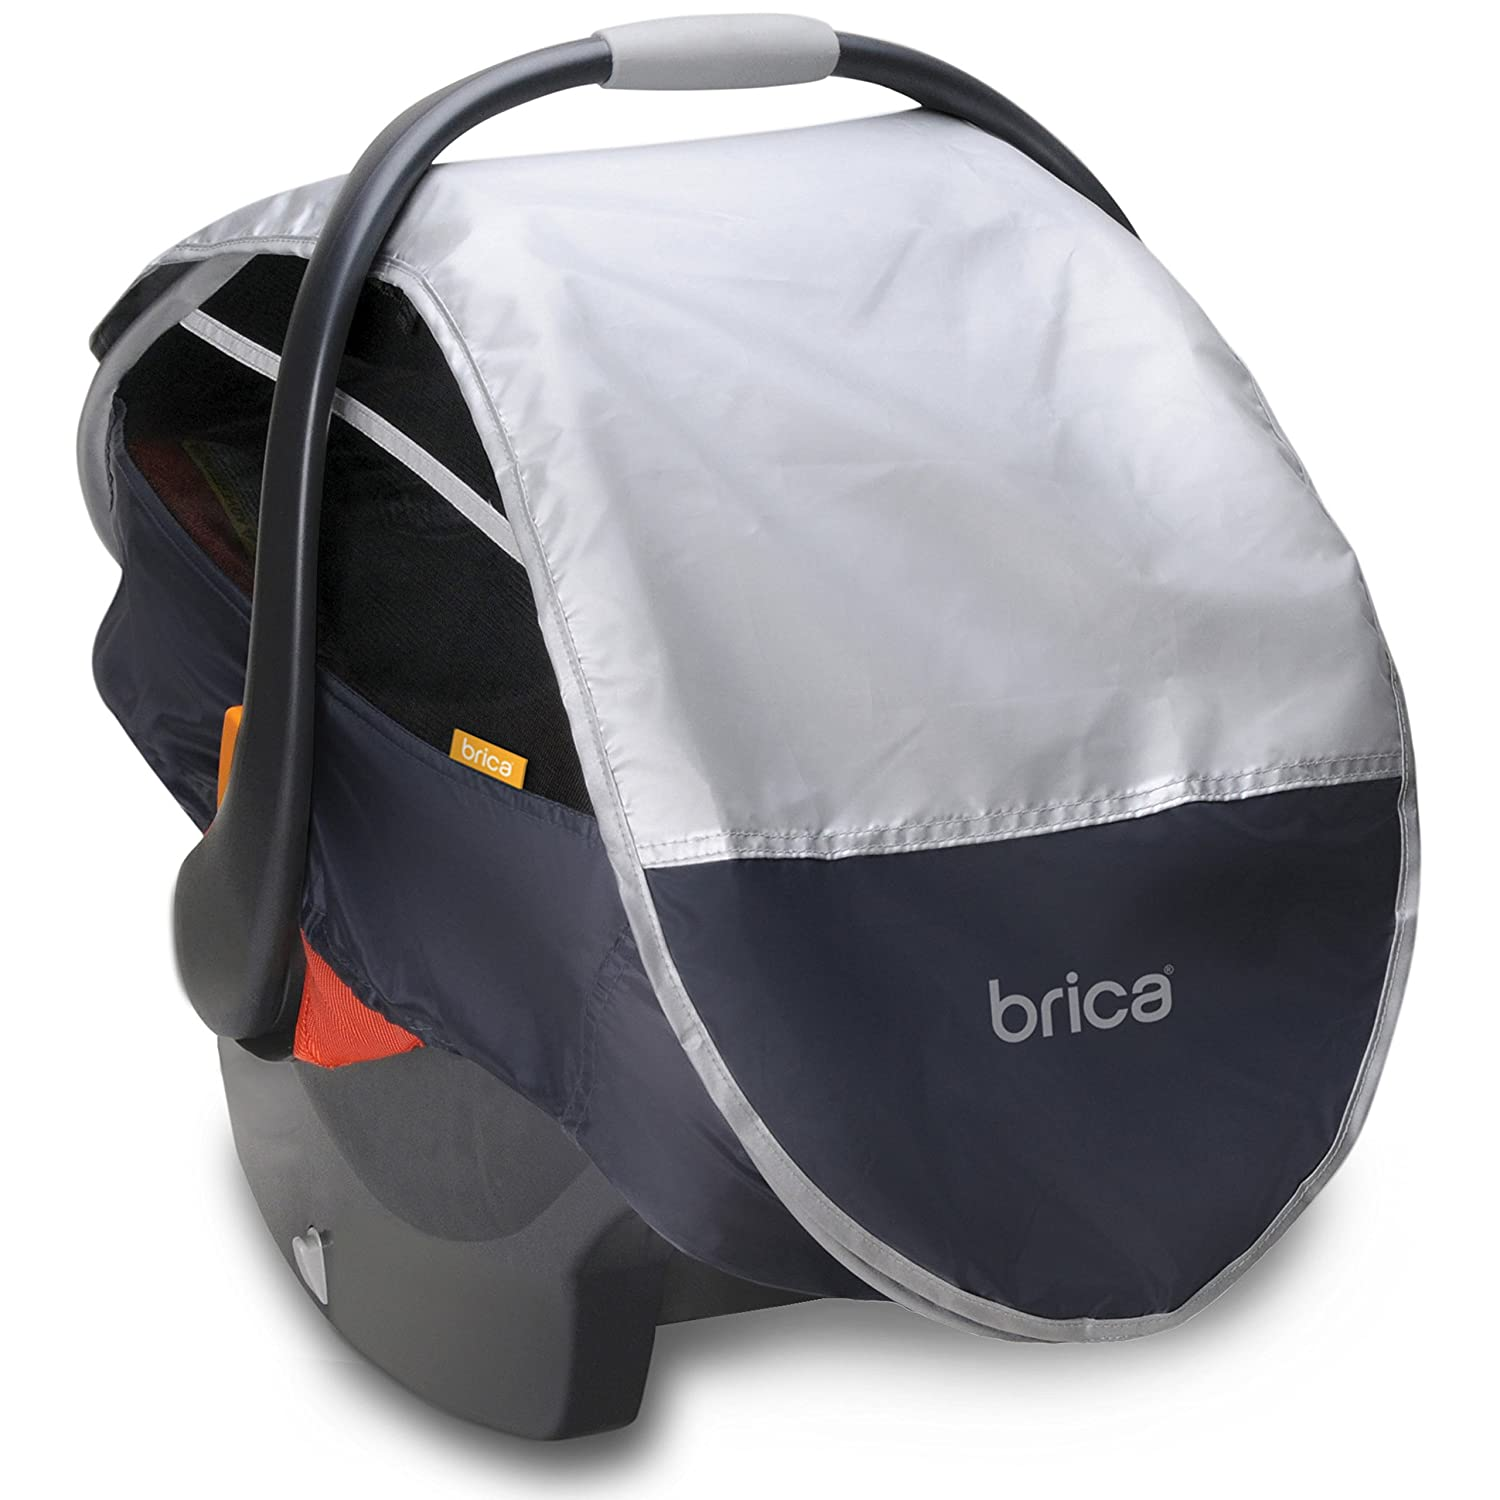 Munchkin BRICA Infant Comfort Canopy Car Seat Cover, Grey 69000